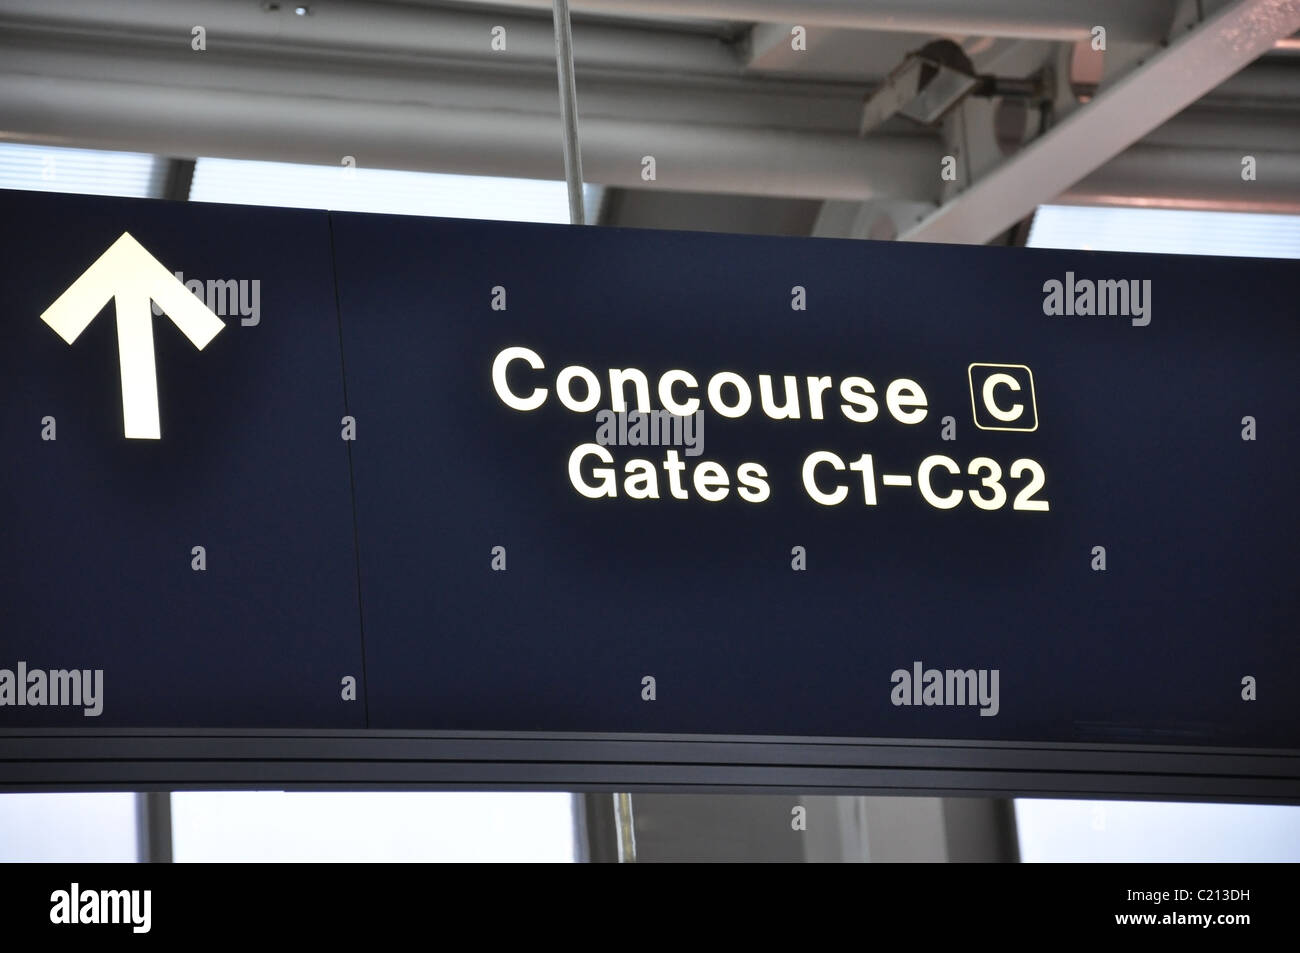 a dark blue airport sign reading Concourse C and Gates C1 to C32 in white with a directional arrow - Stock Image